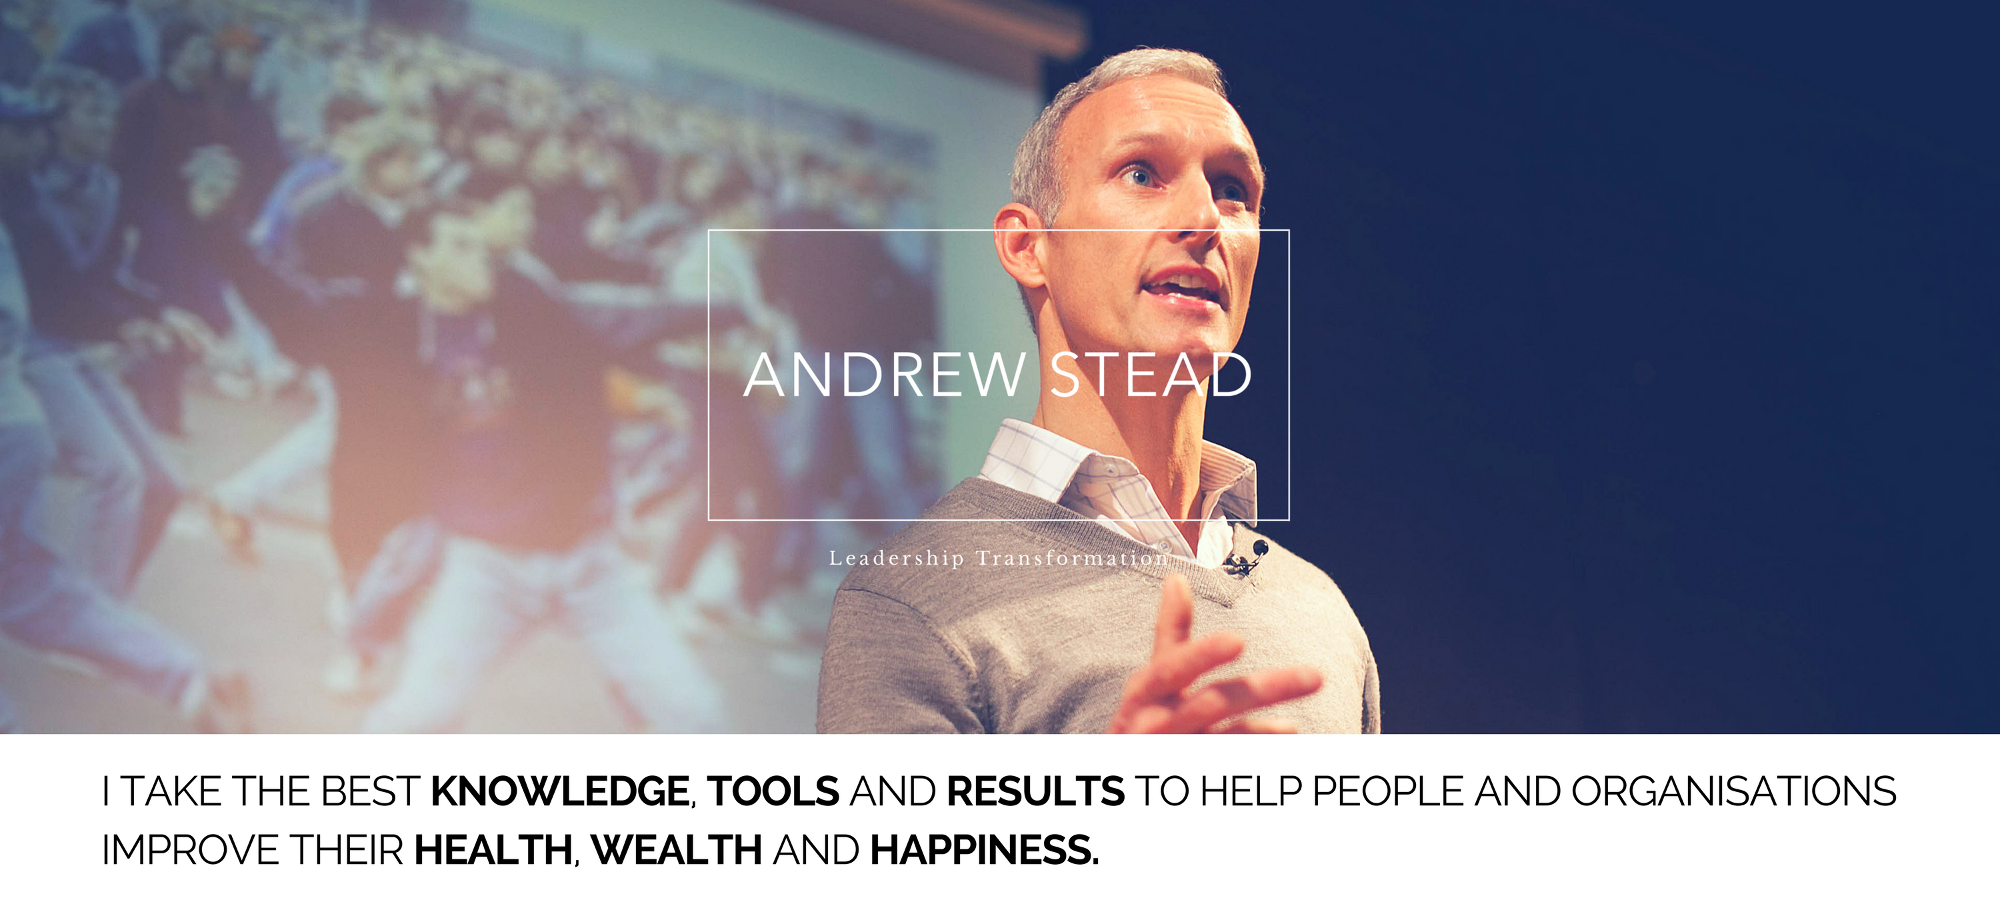 Andrew-Stead-Leadership-Transformations-Main-Page